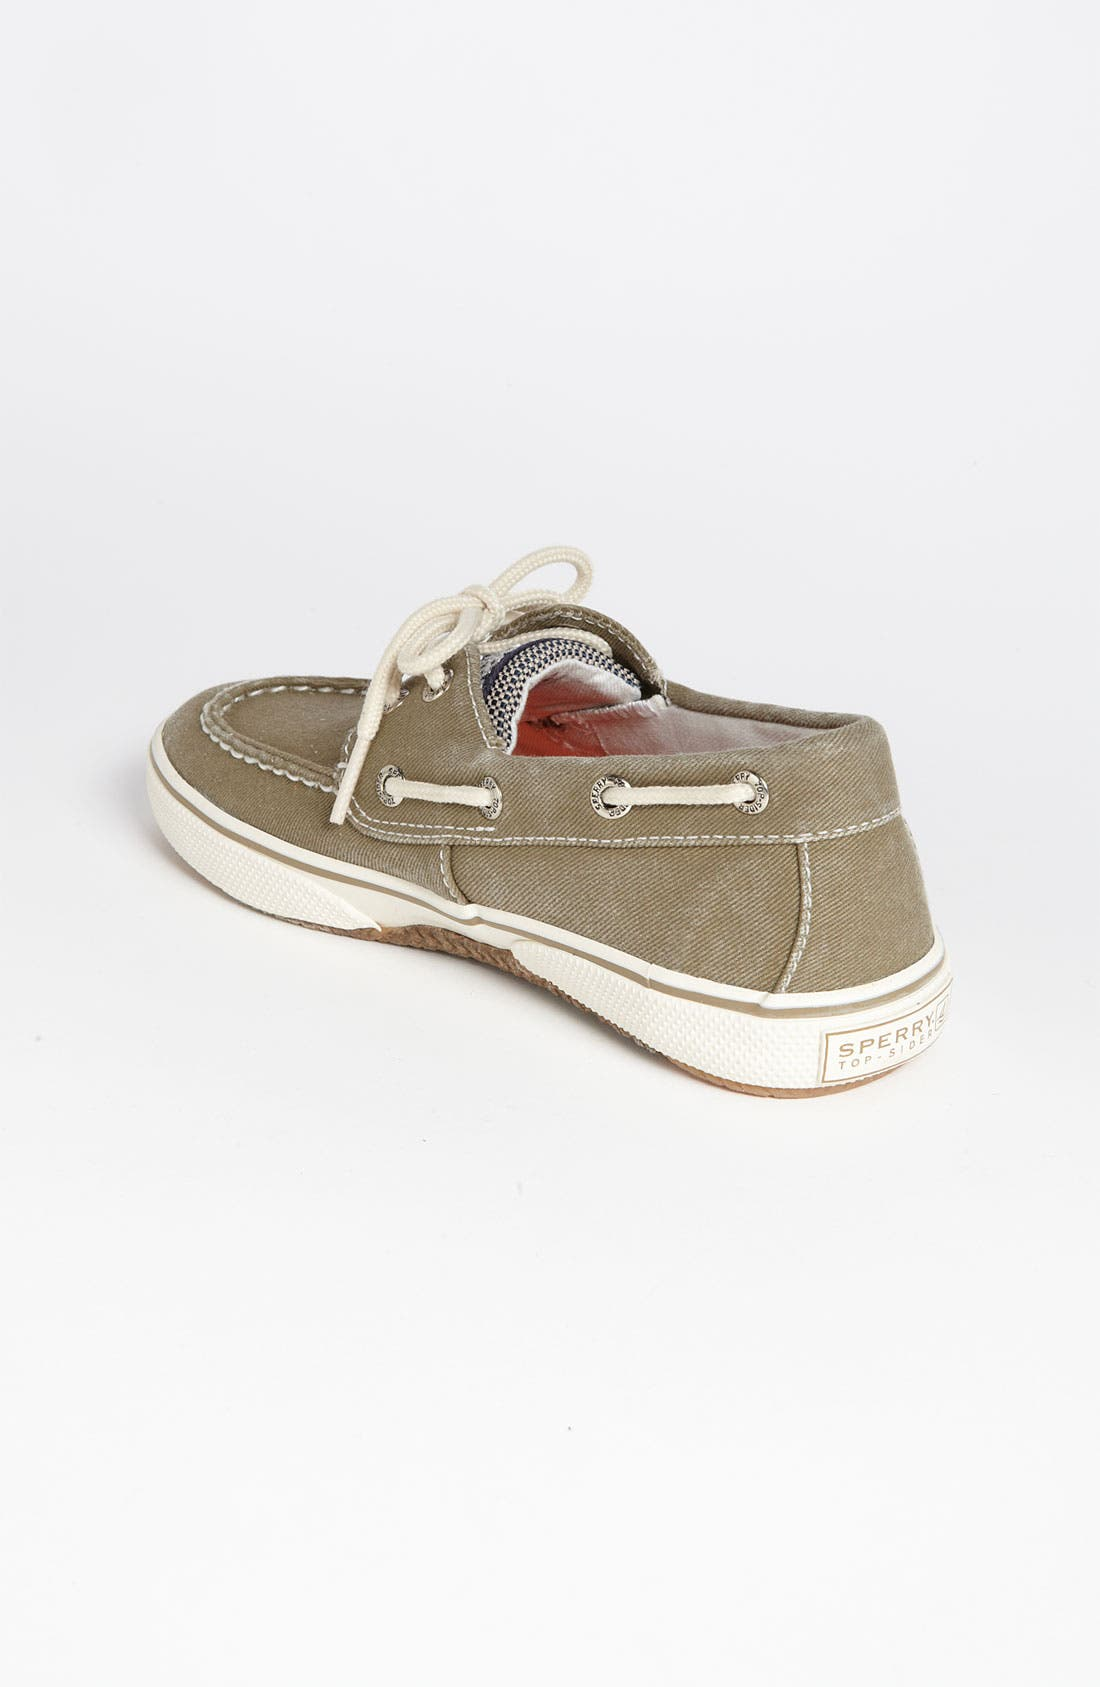 Alternate Image 2  - Sperry Top-Sider® 'Halyard' Boat Shoe (Walker, Toddler, Little Kid & Big Kid)